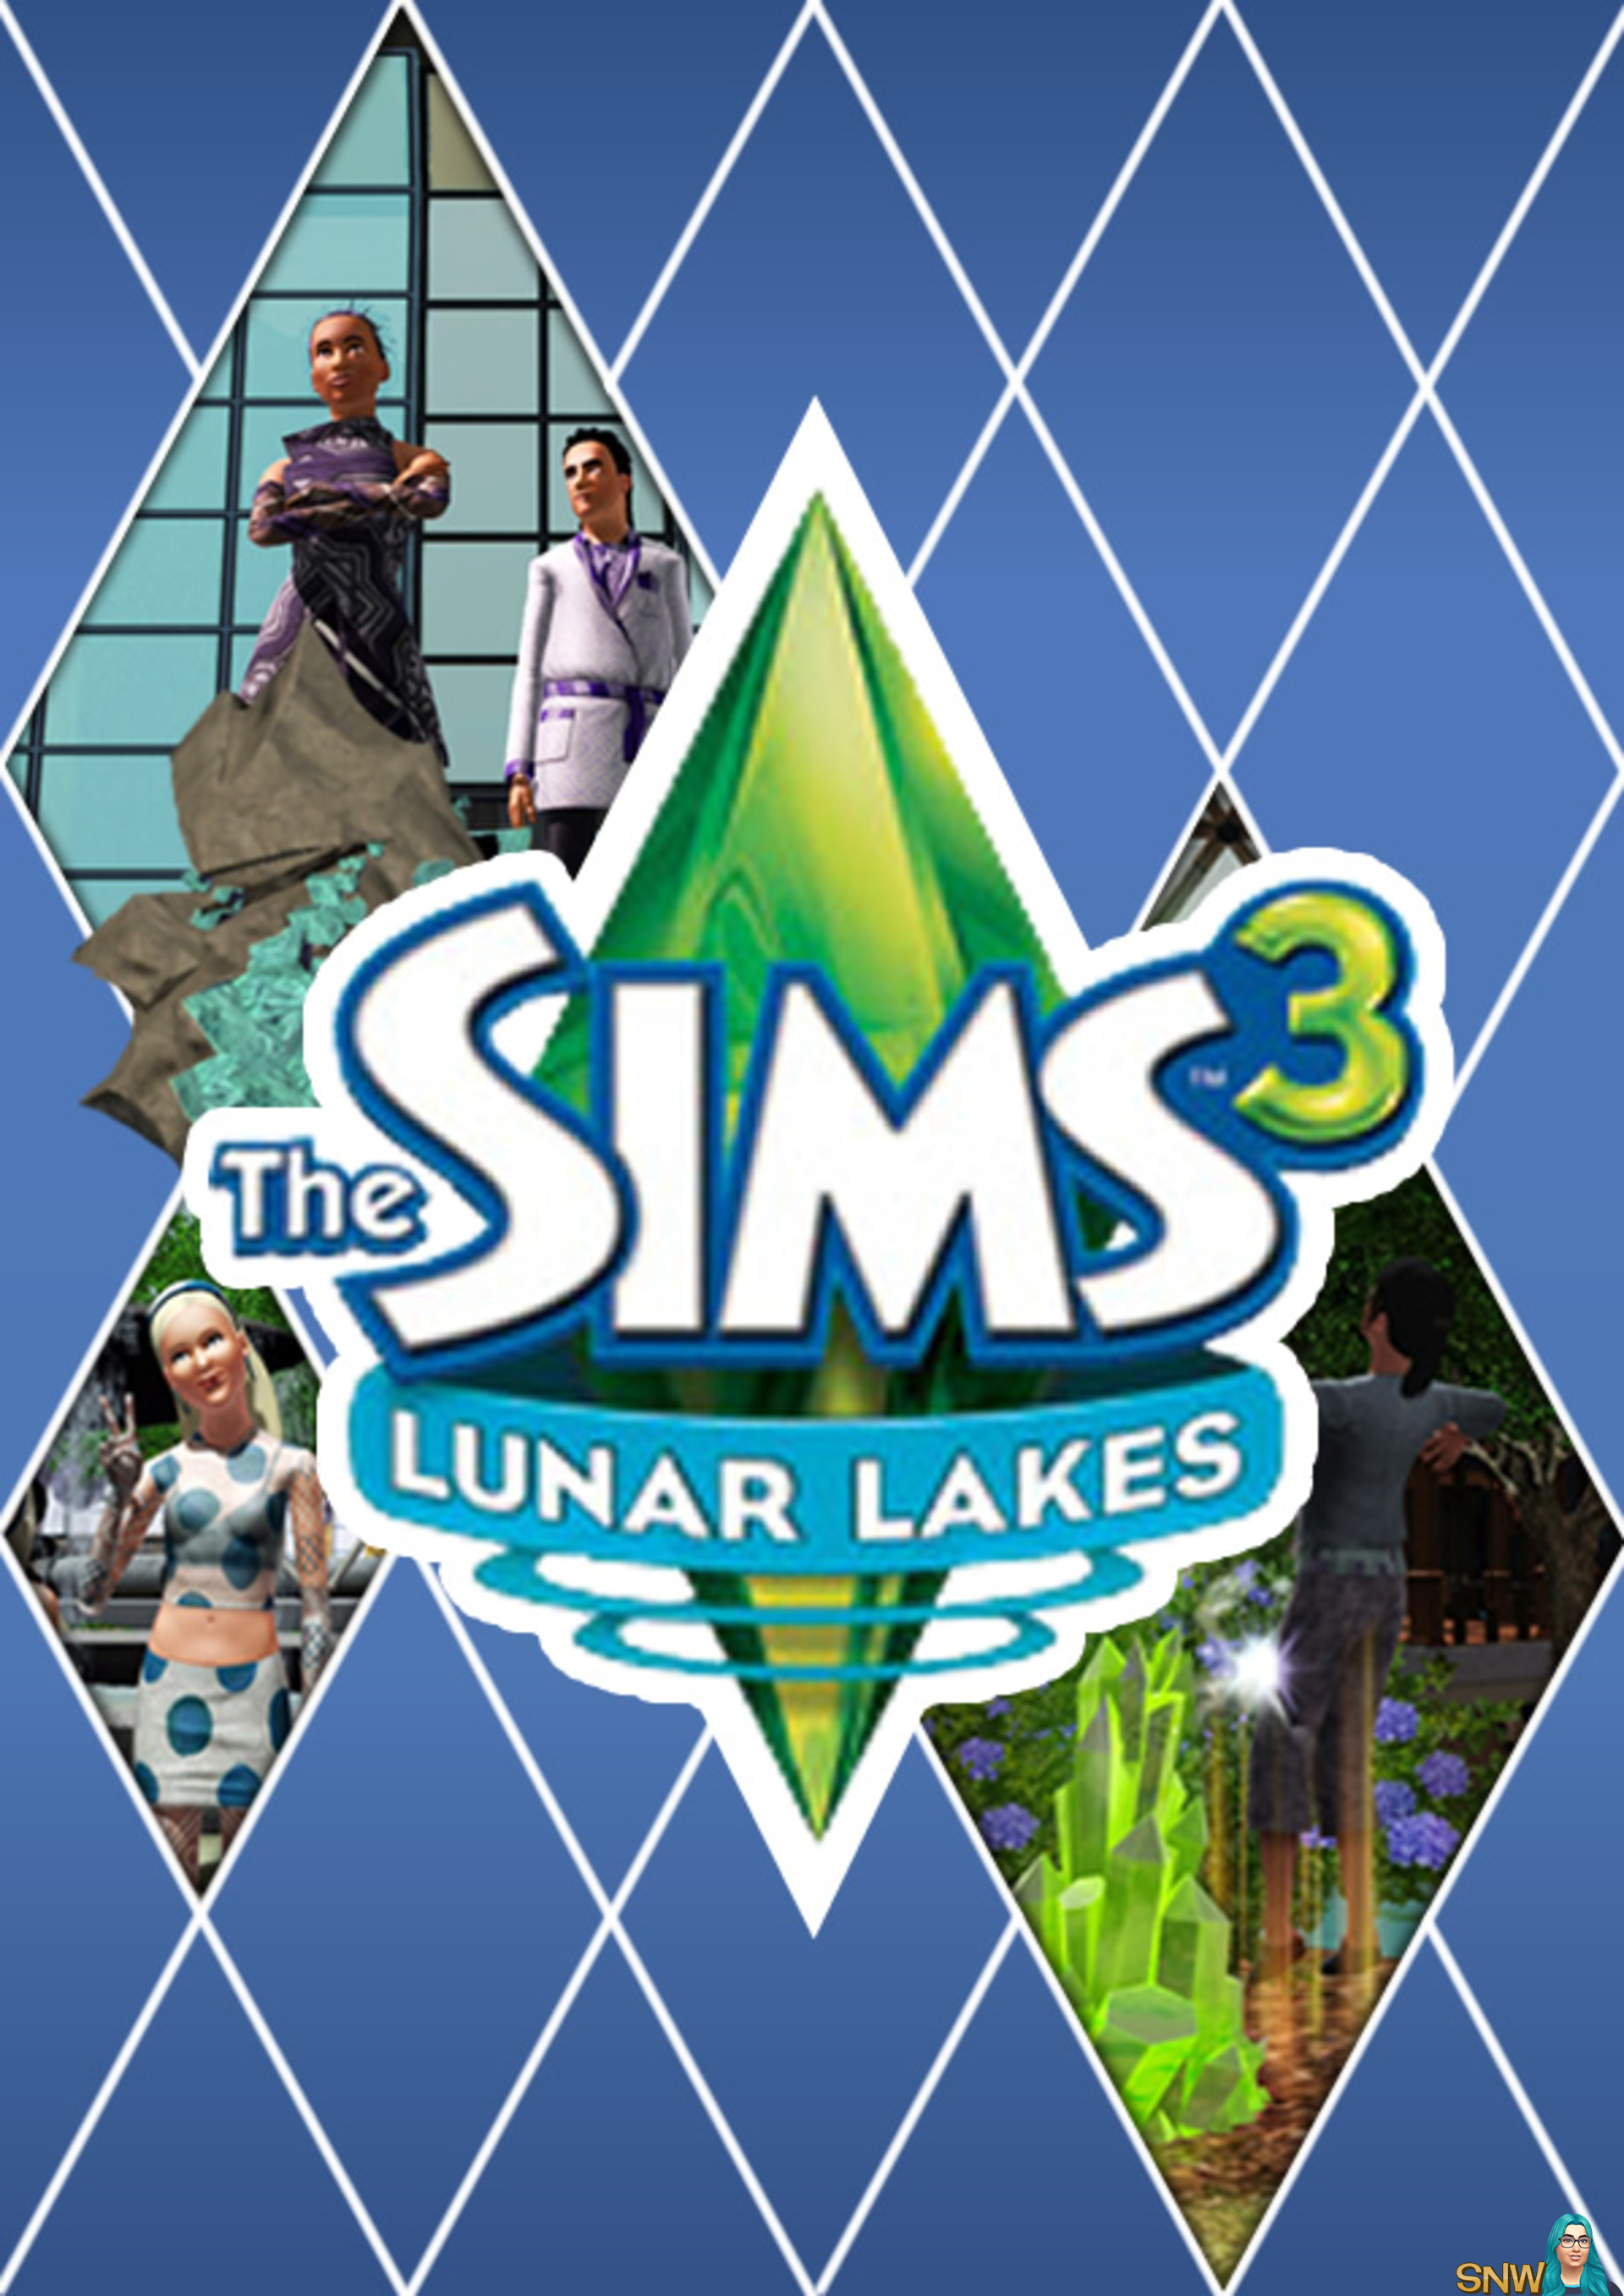 The Sims 3 Lunar Lakes Snw Simsnetwork Com